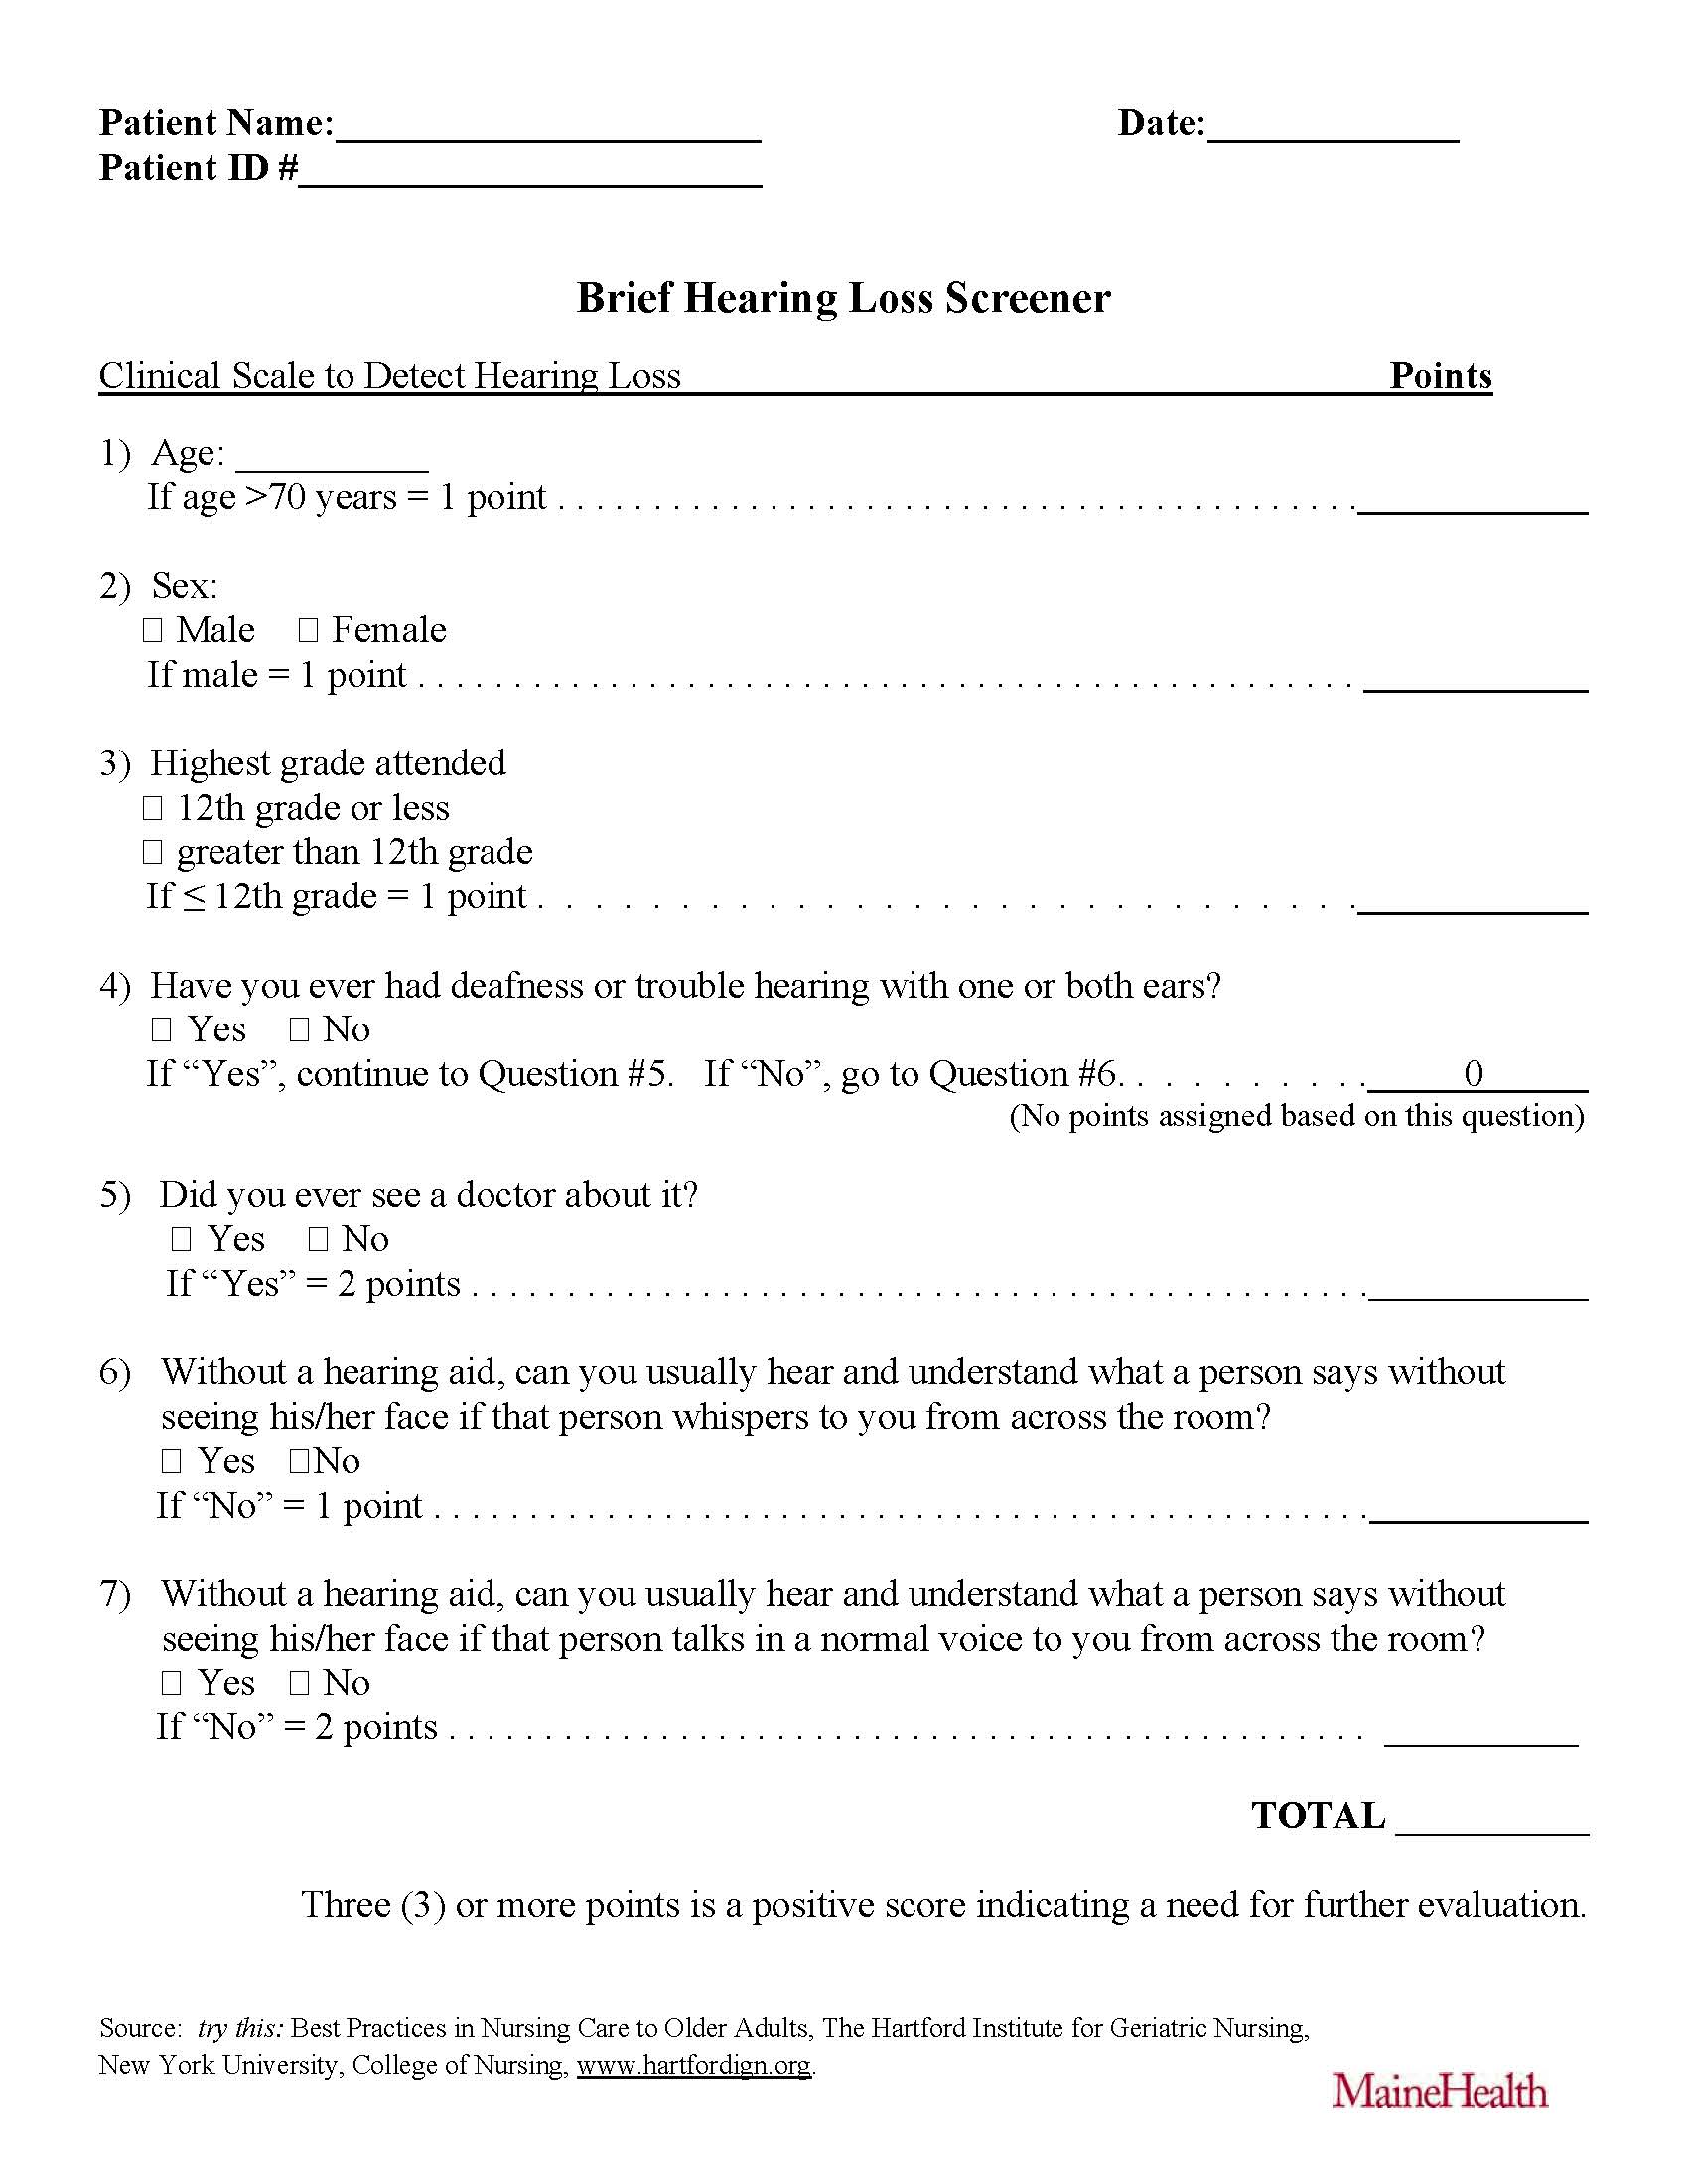 Pages from 33. Brief Hearing Loss Screener